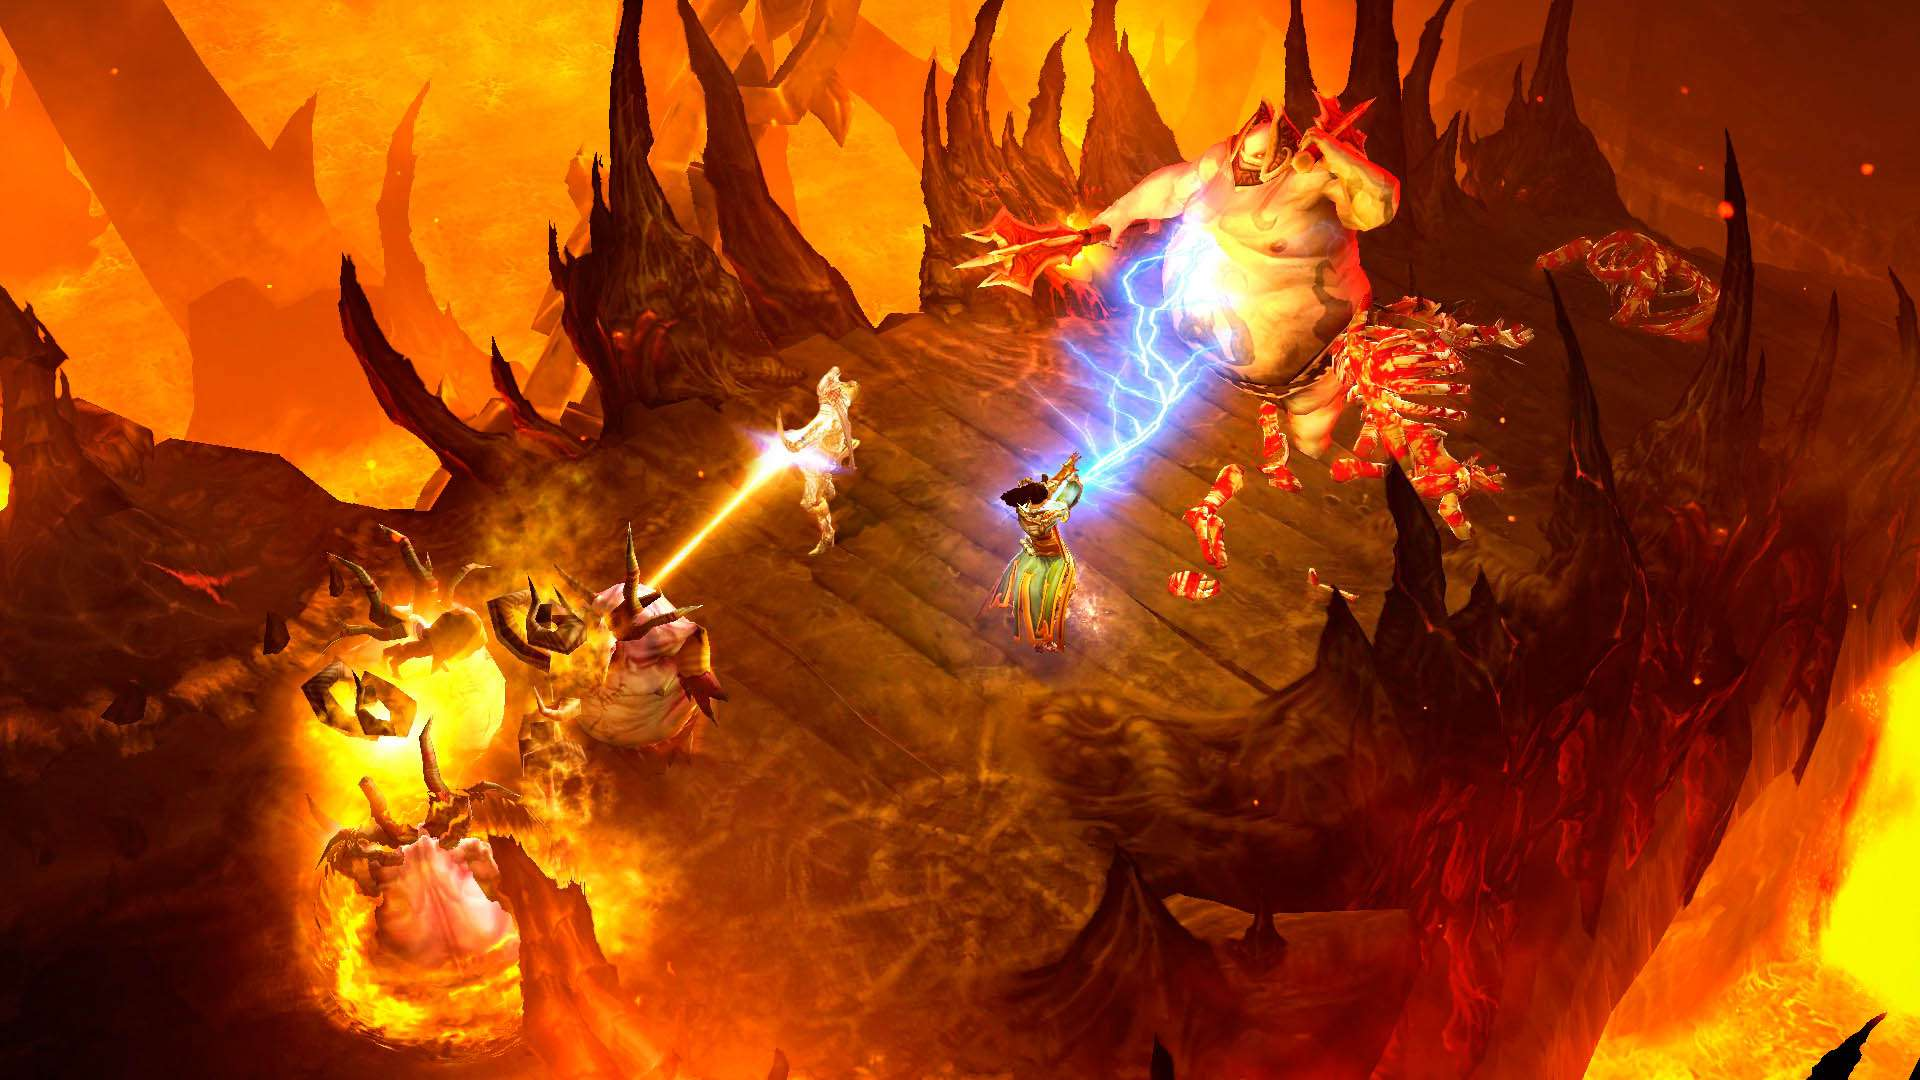 Diablo 3 saves online game